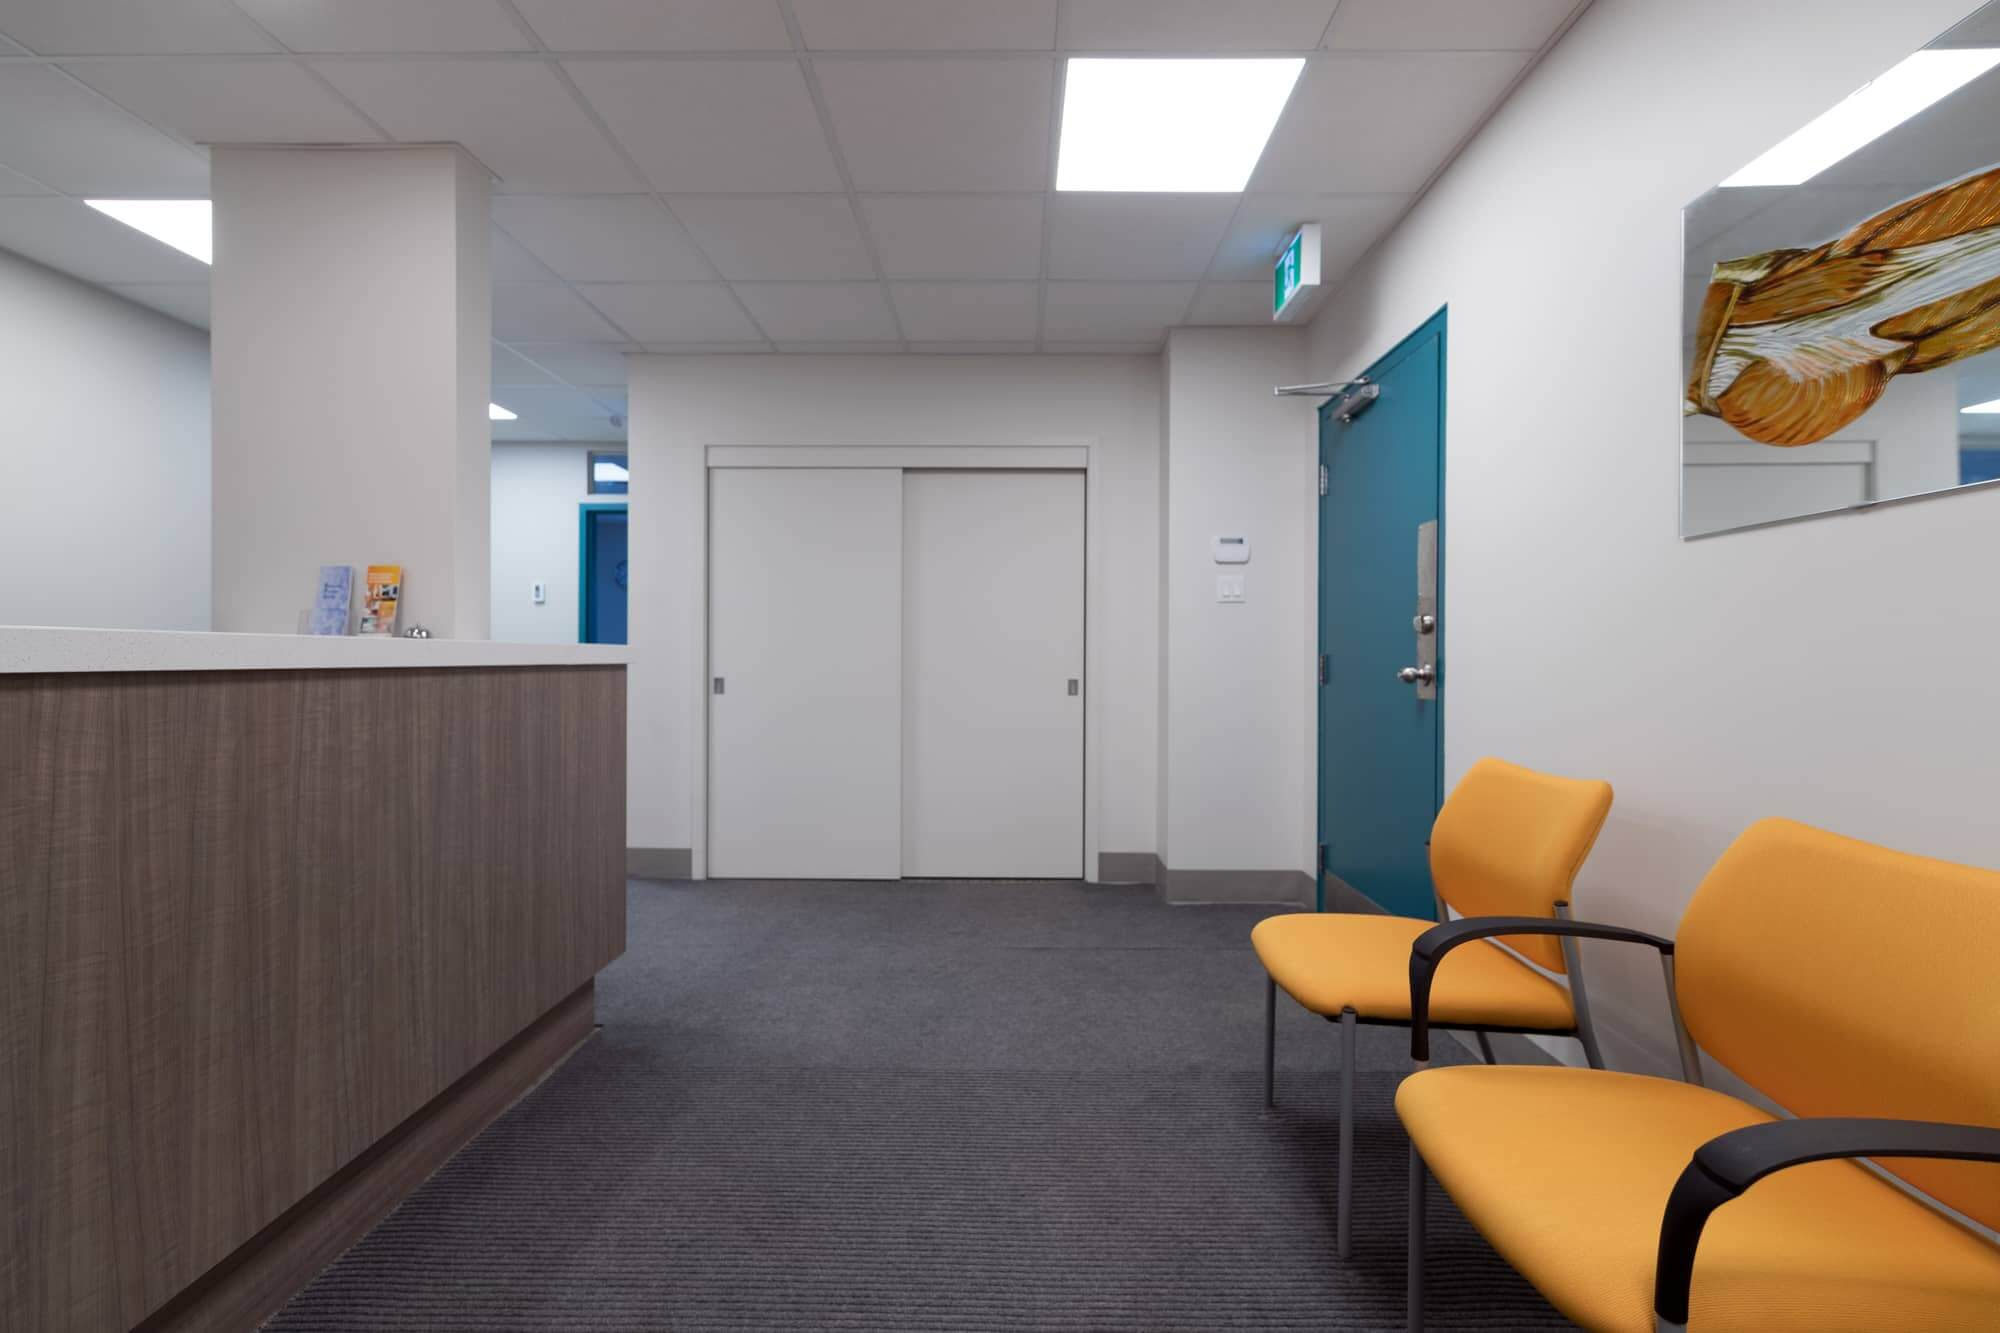 Waiting room with yellow chairs and turquoise door in a physiotherapy clinic newly renovated